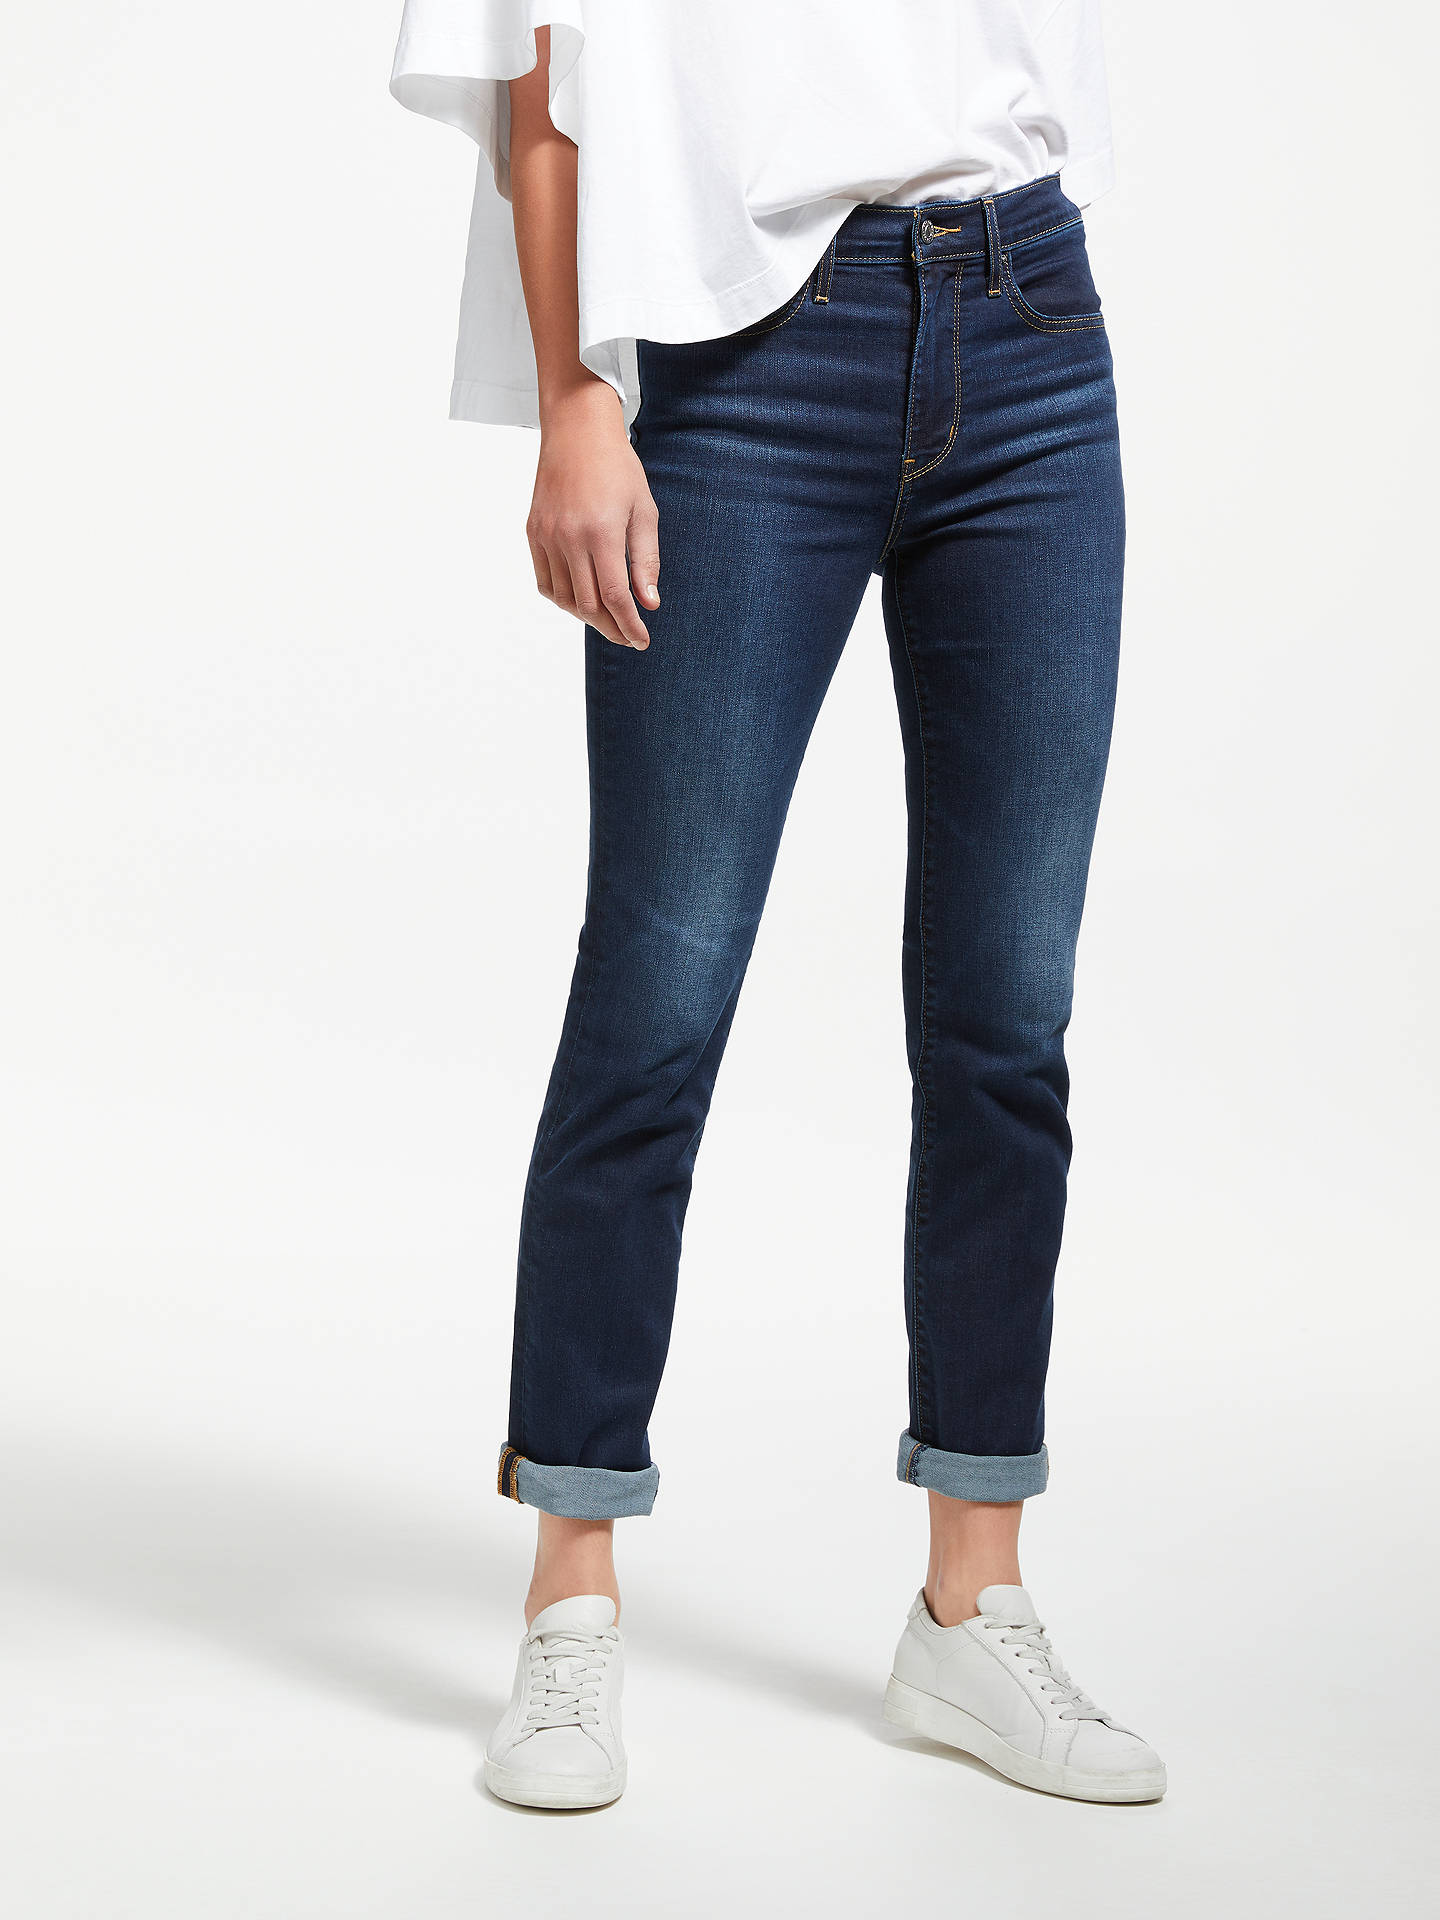 Partners Rise Straight amp; Levi's Lewis 724 John At High Jeans wOWH4Ax